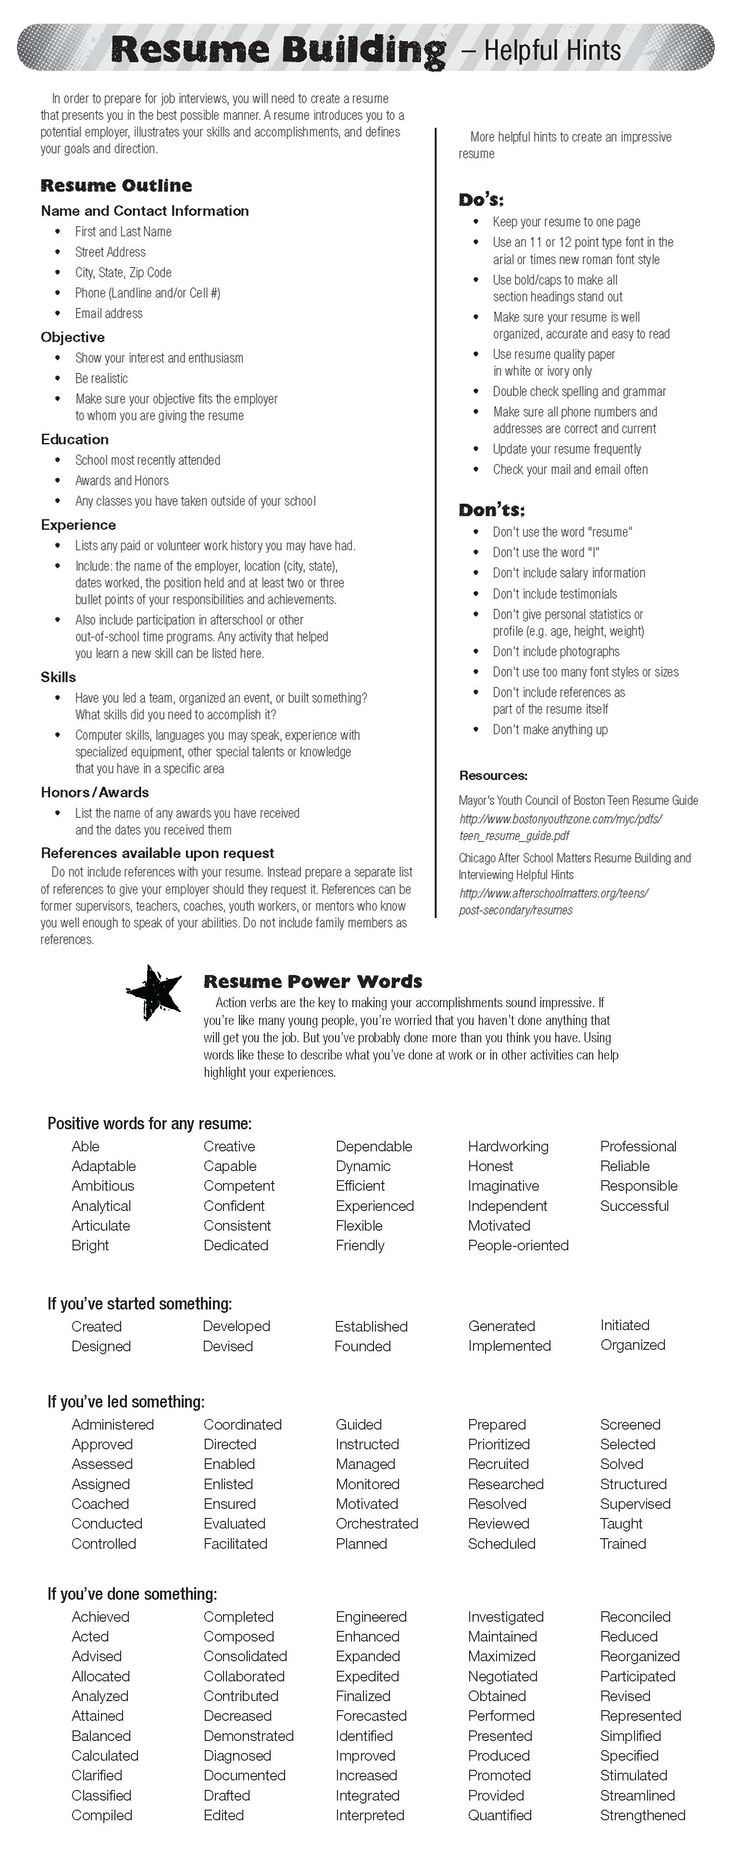 Opposenewapstandardsus  Picturesque  Ideas About Resume On Pinterest  Cv Format Resume Cv And  With Exciting  Ideas About Resume On Pinterest  Cv Format Resume Cv And Resume Templates With Easy On The Eye Marketing Objective Resume Also Skills To Include In Resume In Addition Esthetician Resumes And Real Estate Administrative Assistant Resume As Well As Cover Pages For Resume Additionally Example Of A Bad Resume From Pinterestcom With Opposenewapstandardsus  Exciting  Ideas About Resume On Pinterest  Cv Format Resume Cv And  With Easy On The Eye  Ideas About Resume On Pinterest  Cv Format Resume Cv And Resume Templates And Picturesque Marketing Objective Resume Also Skills To Include In Resume In Addition Esthetician Resumes From Pinterestcom